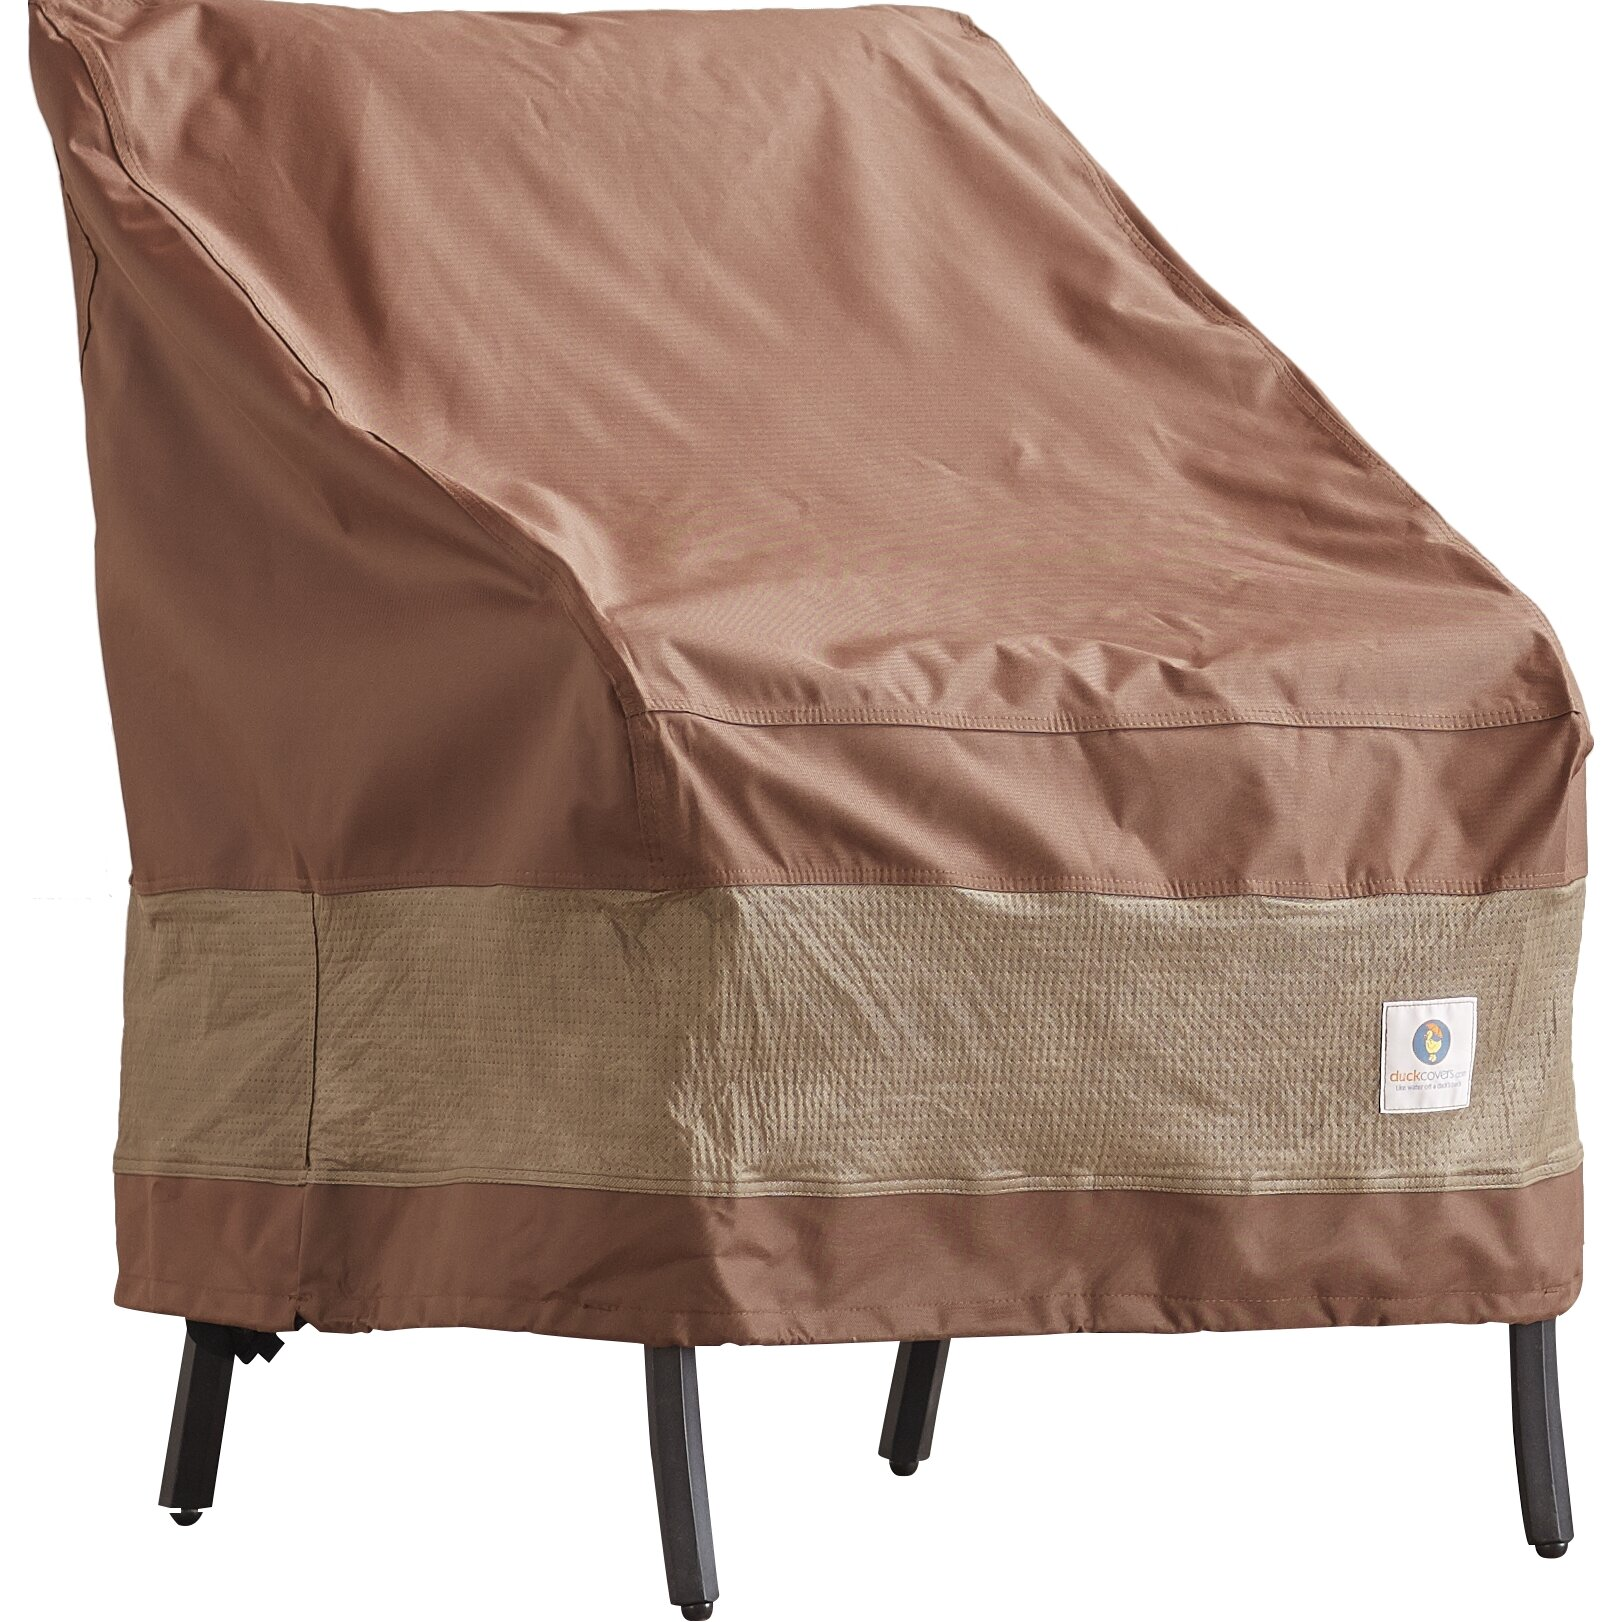 Duck Covers Ultimate Patio Chair Cover & Reviews